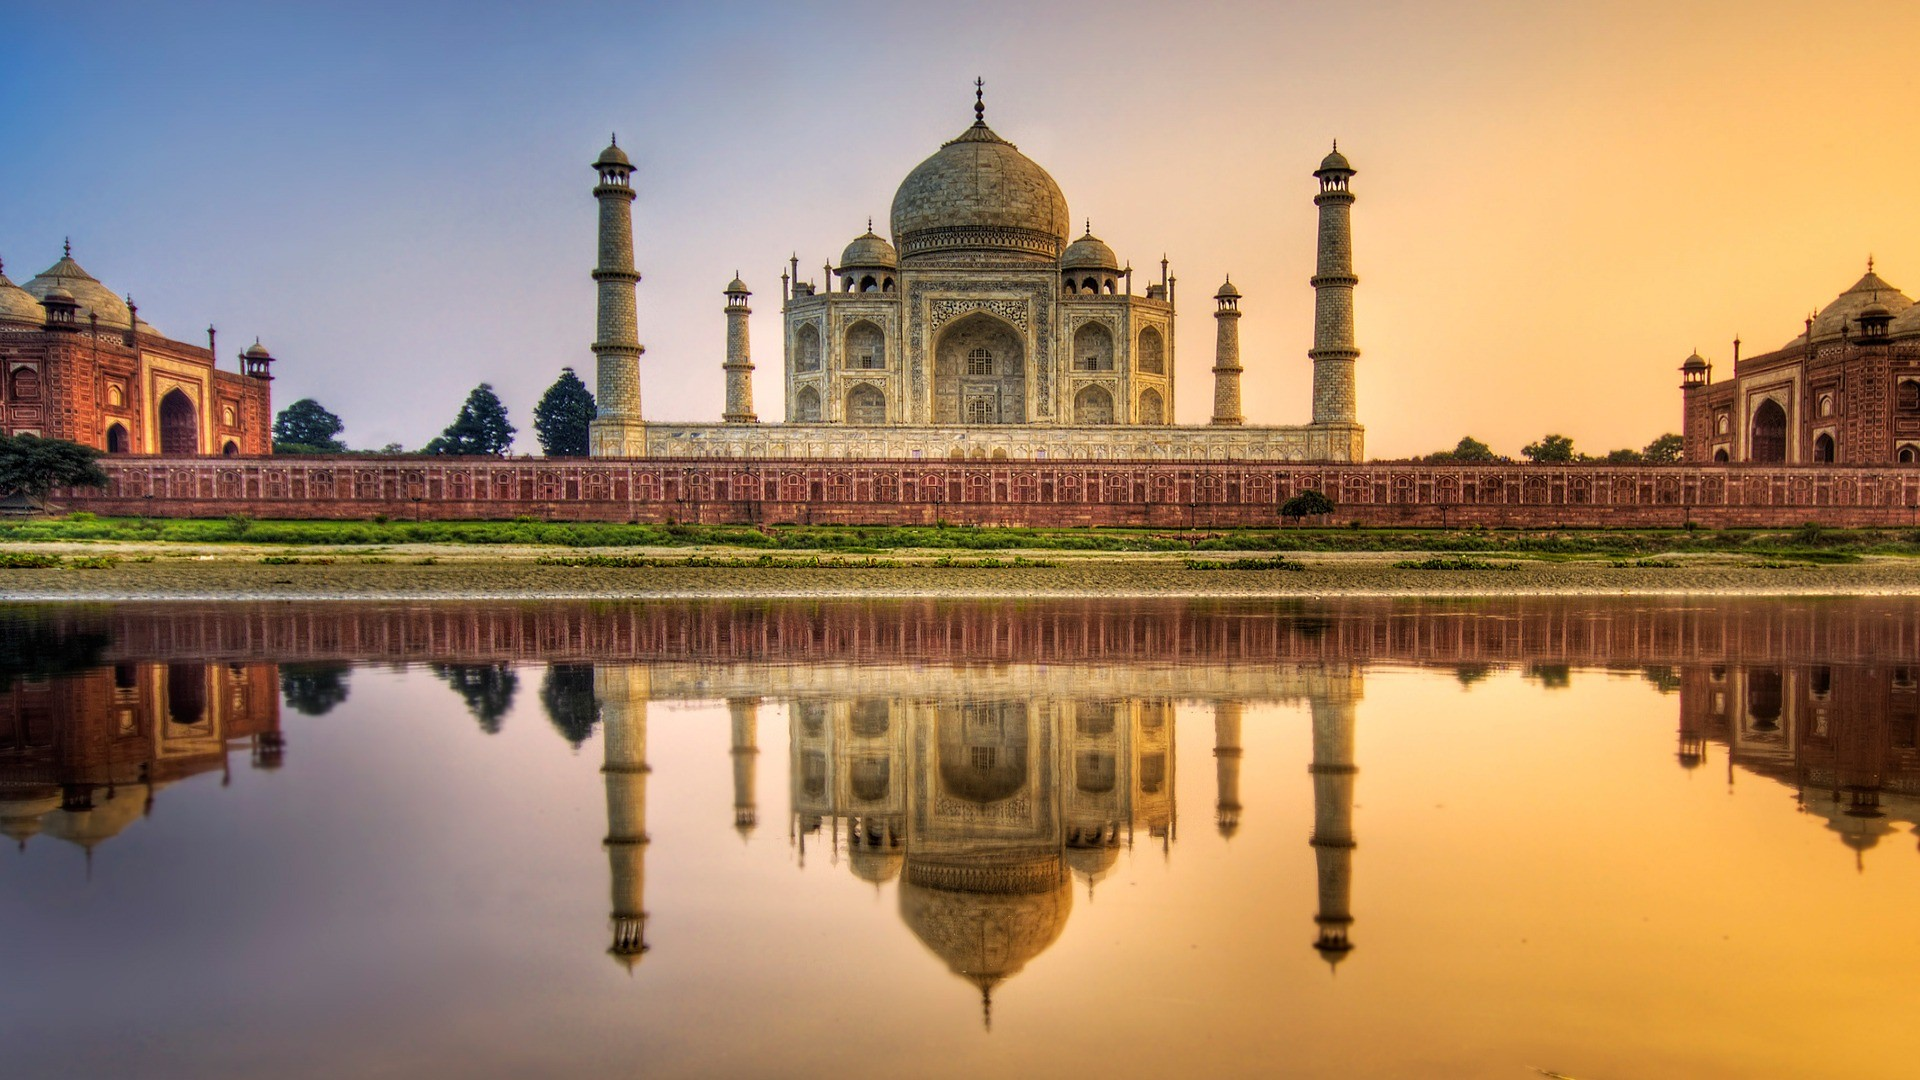 attraction tourism These attractions range from central park in the new york city to the aforementioned harry potter studio tours in the united kingdom the wide category also includes museums like france's musee.